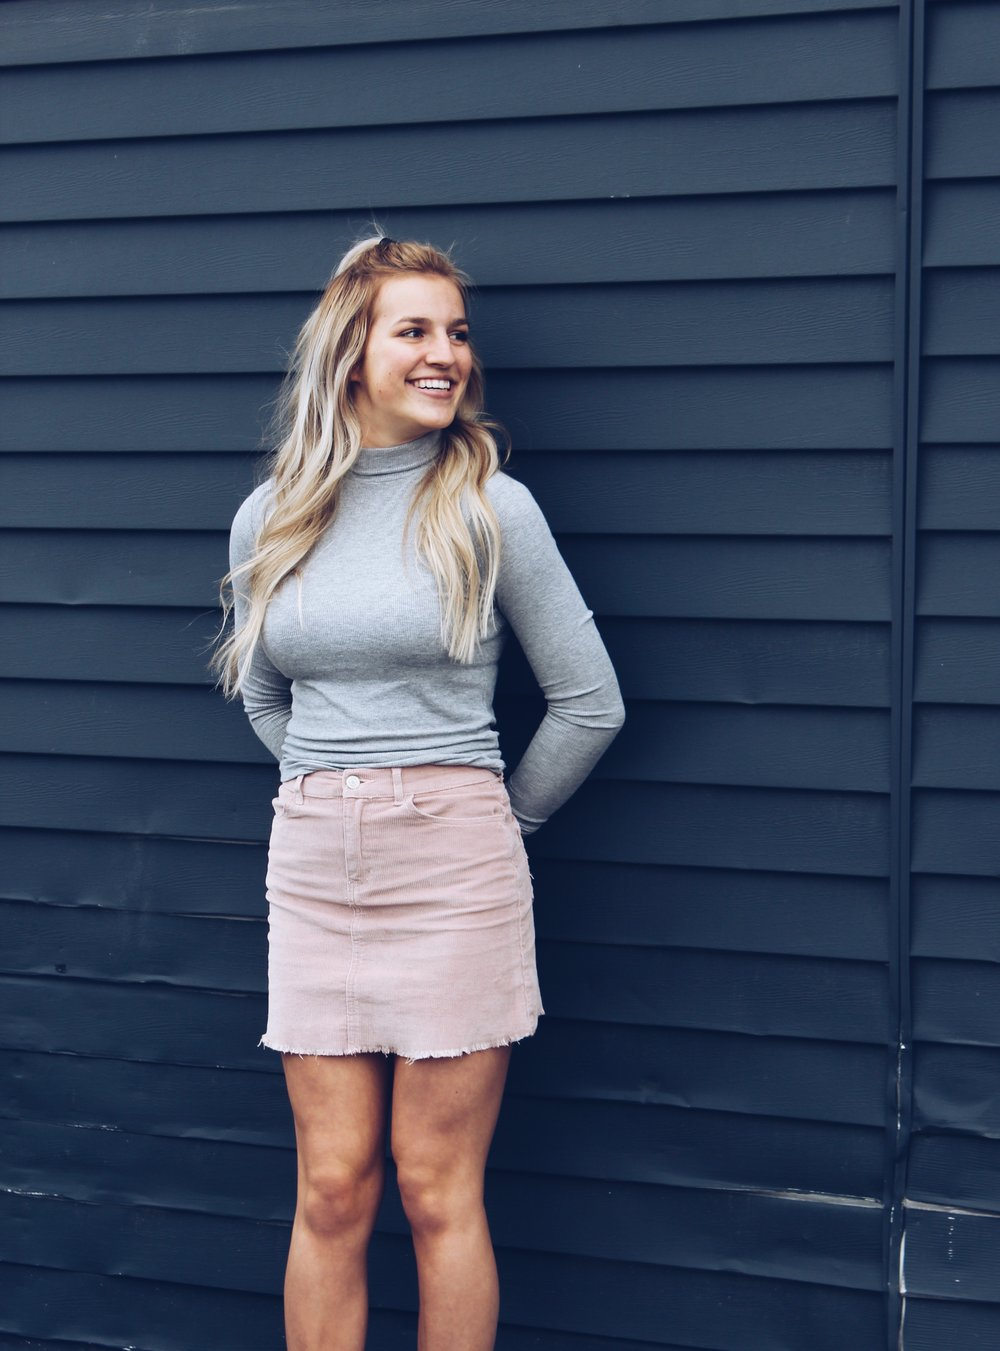 How to Wear a Skirt in Colder Weather